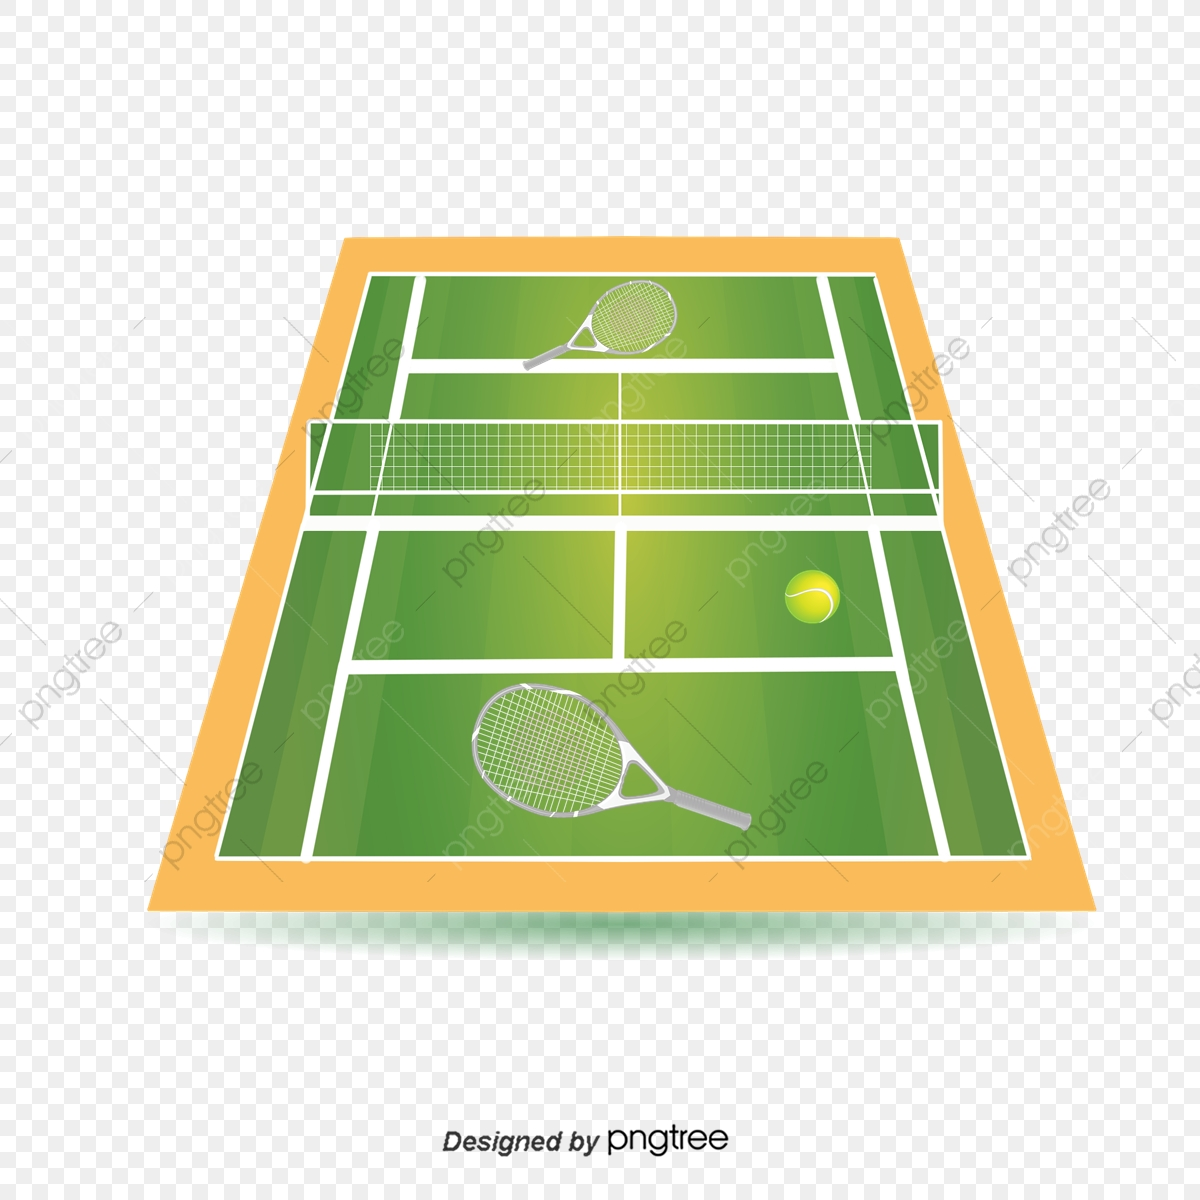 Illustration Of Green Tennis Court Illustration Popular Network Png Transparent Clipart Image And Psd File For Free Download